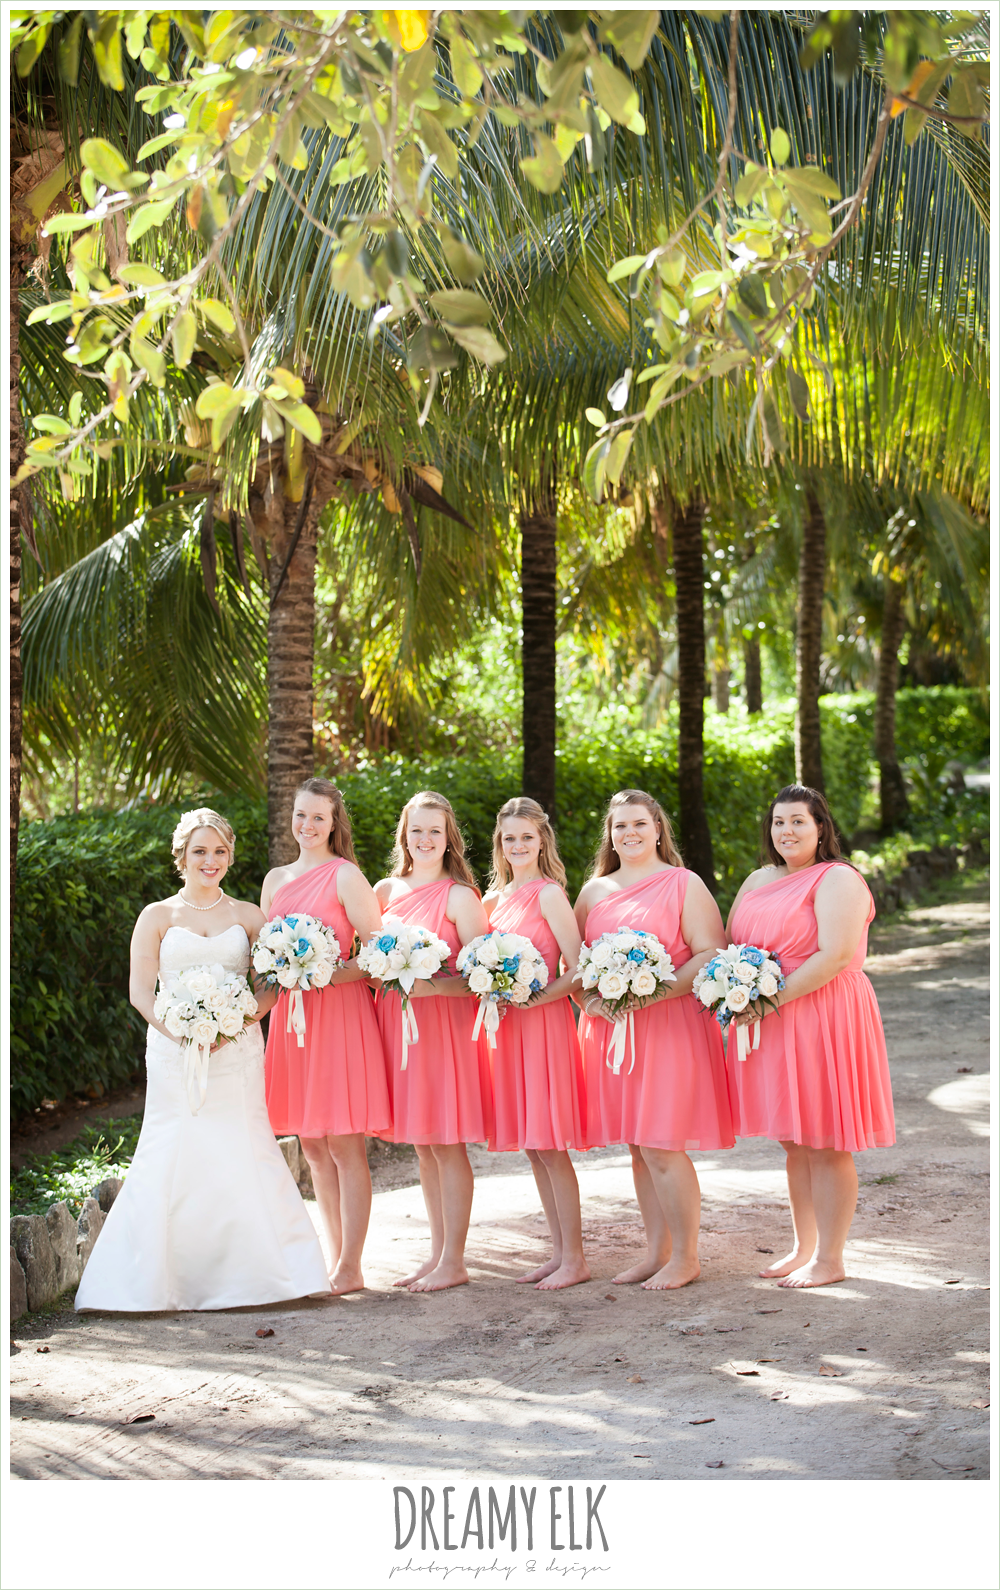 pink, one shoulder bridesmaids dresses, fit and flare wedding dress, destination wedding, cozumel {dreamy elk photography and design} photo